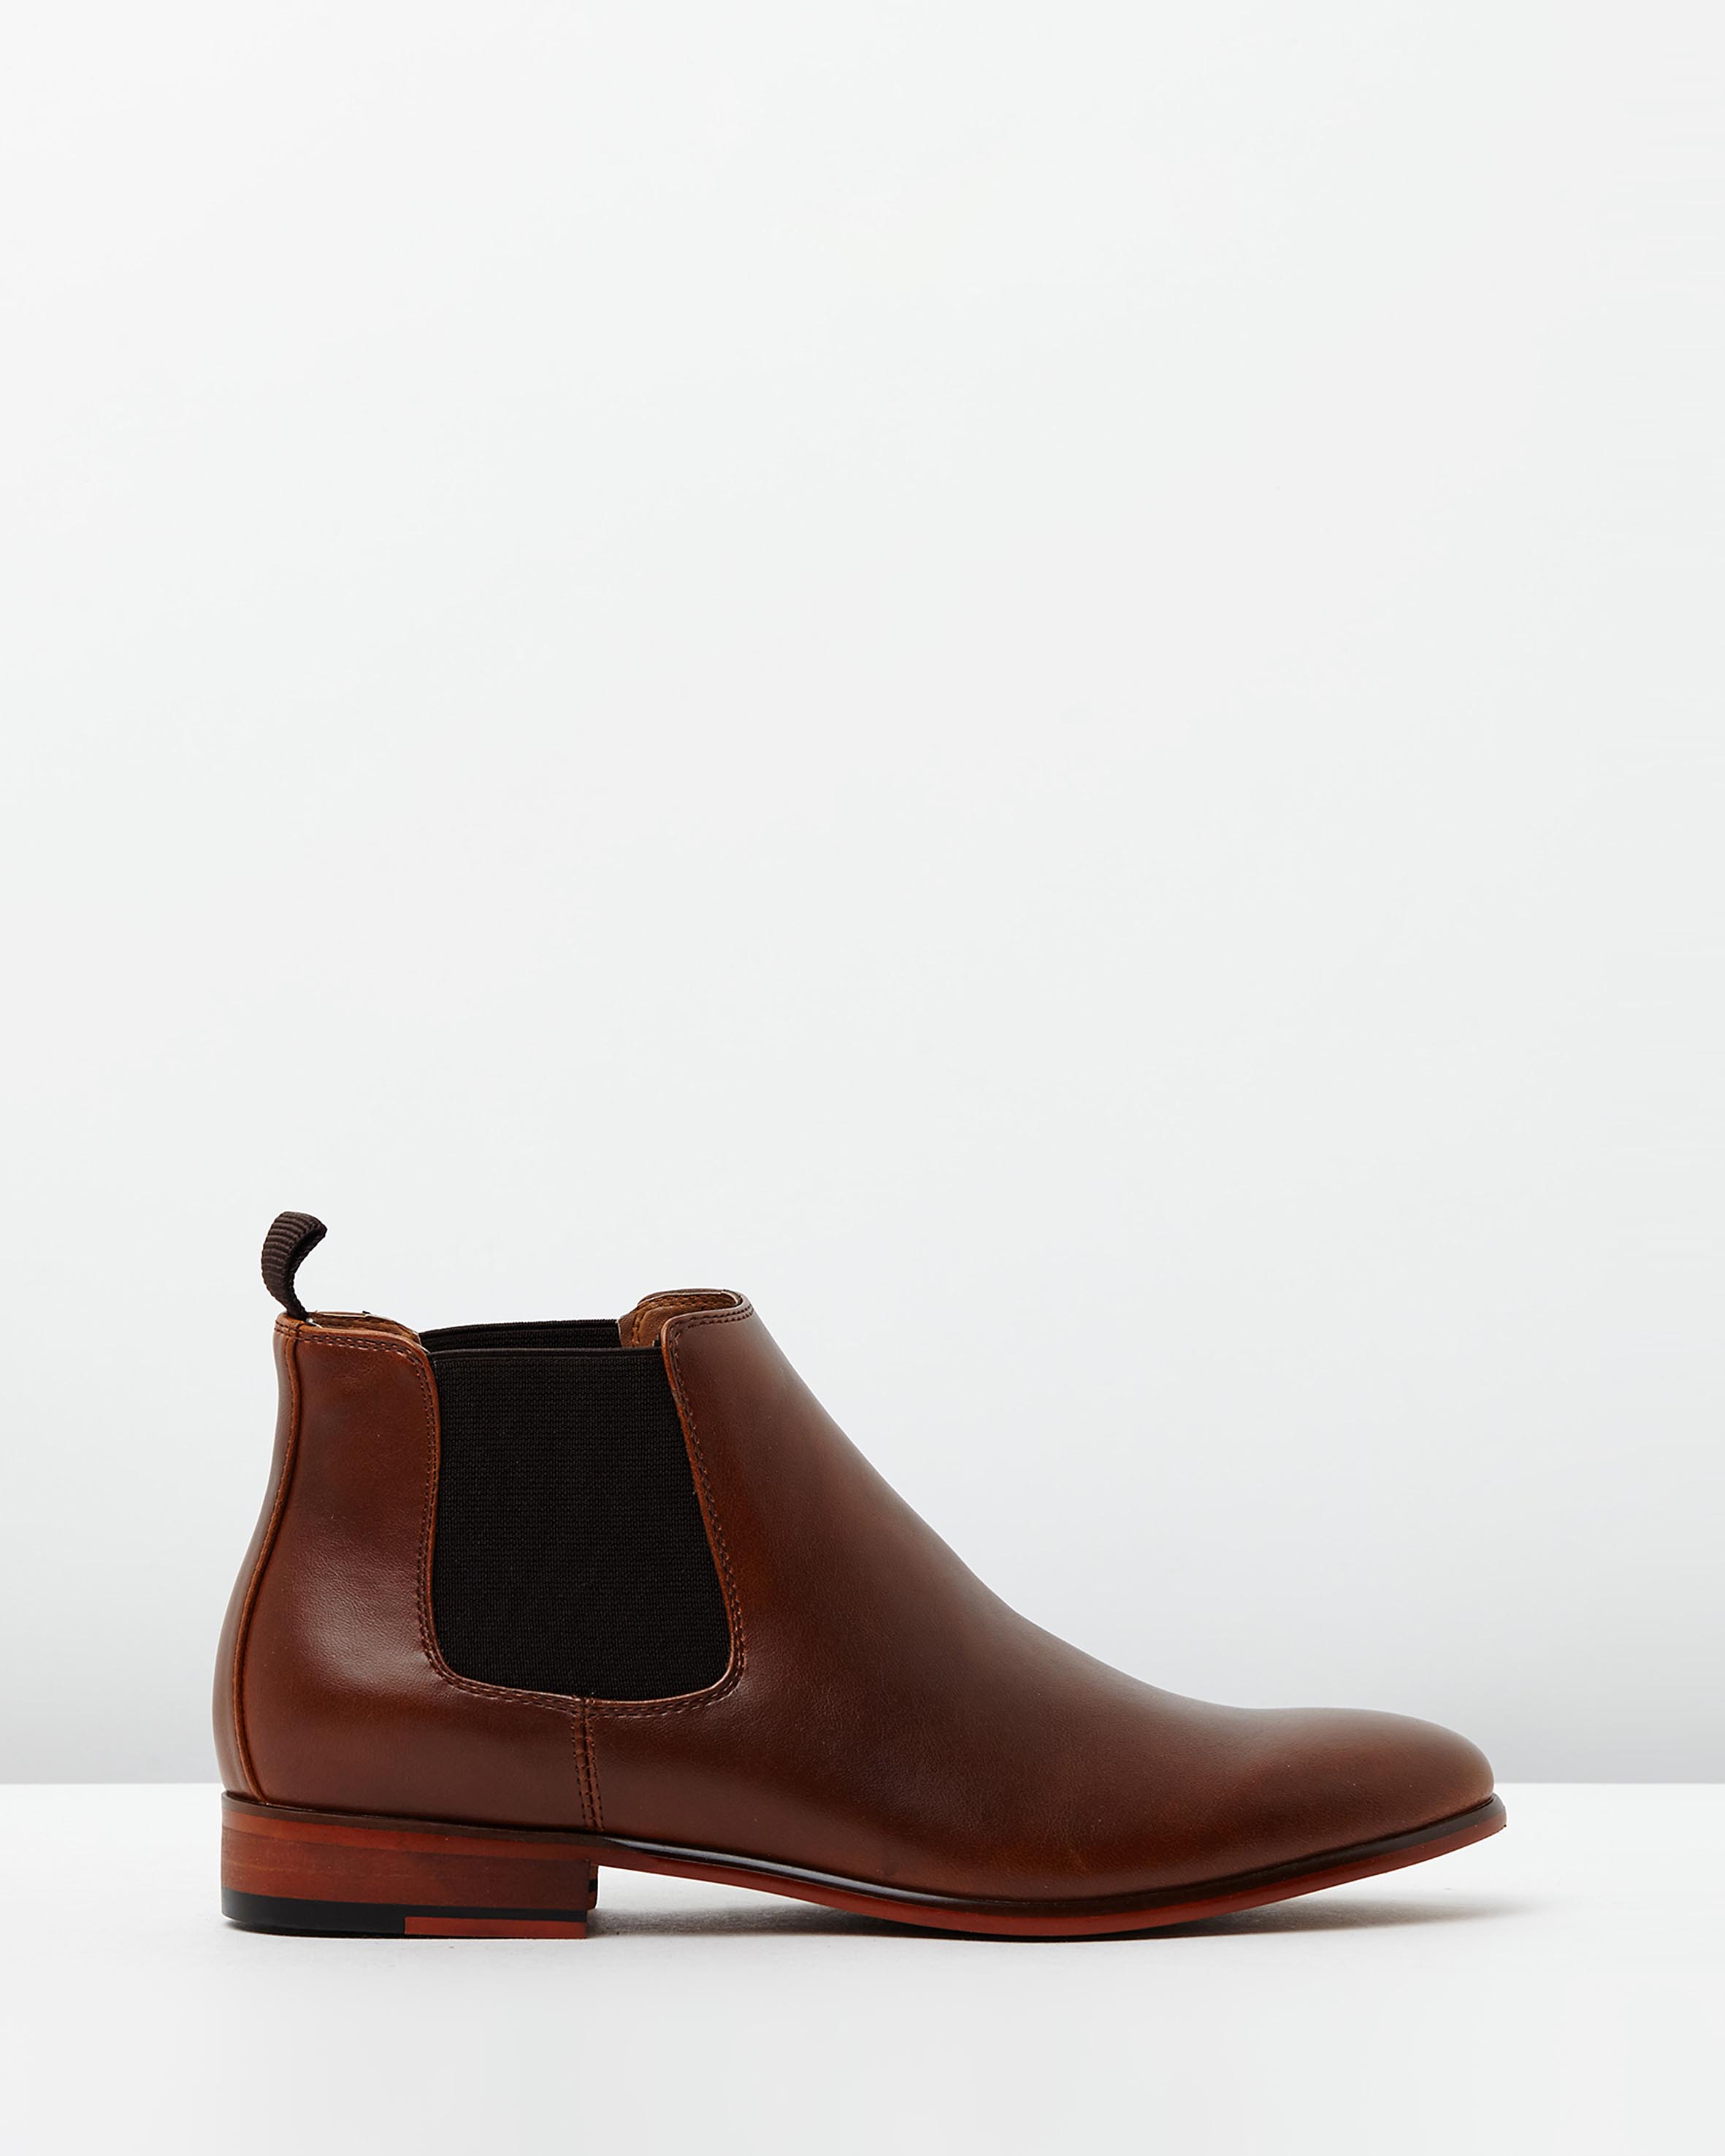 Where To Buy Mens Boots